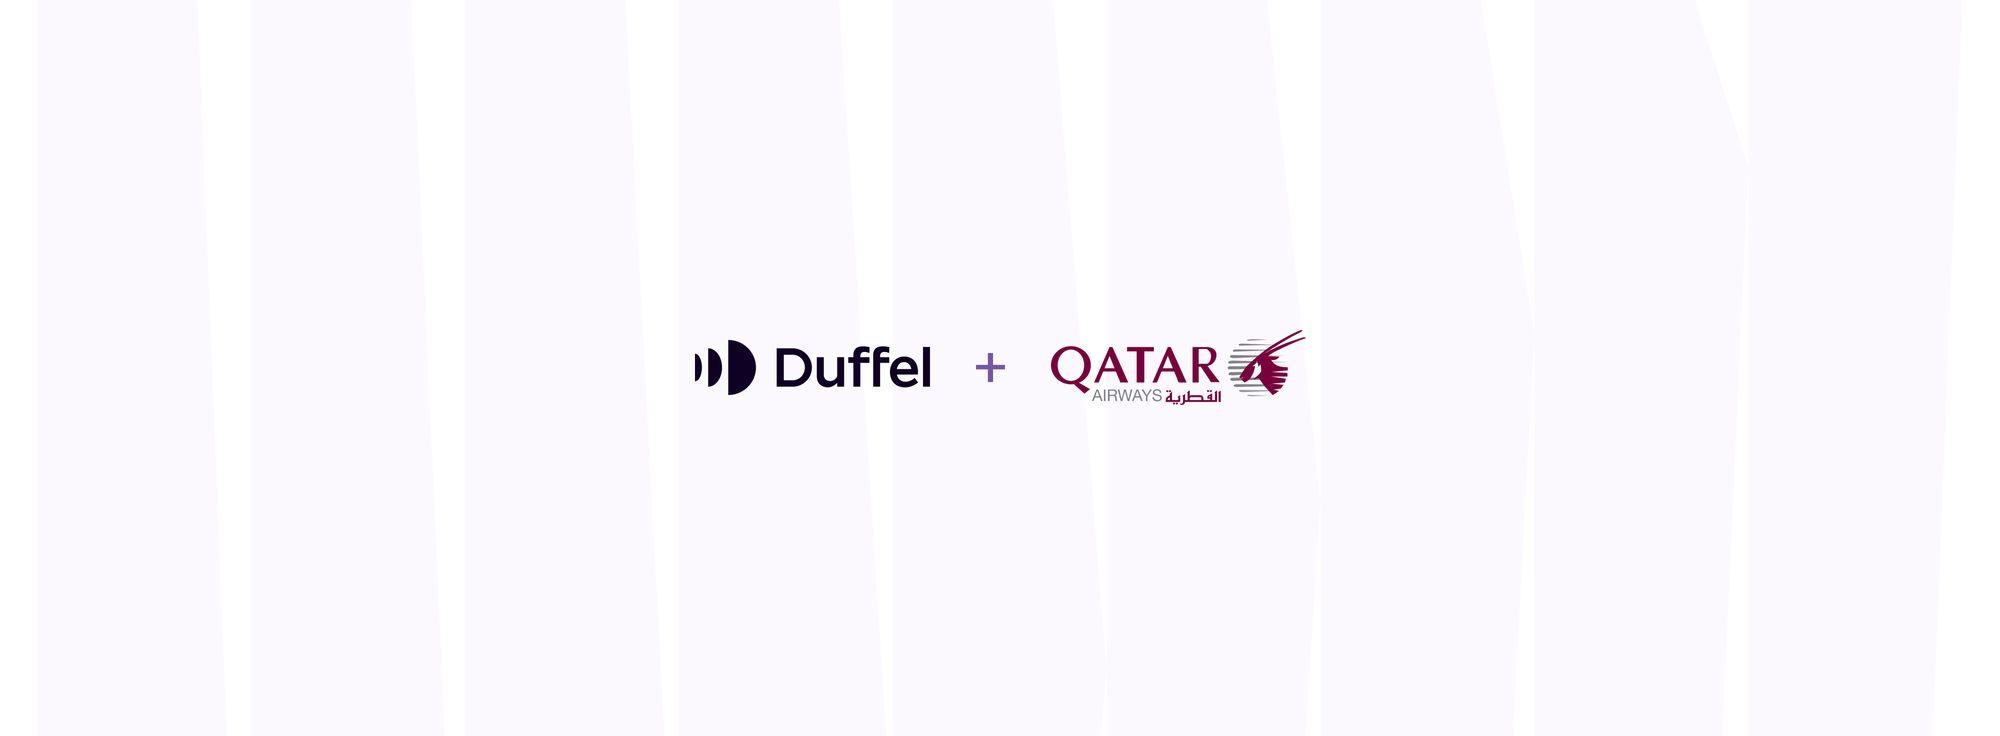 Qatar Airways - SKYTRAX's Airline of the Year is available on Duffel